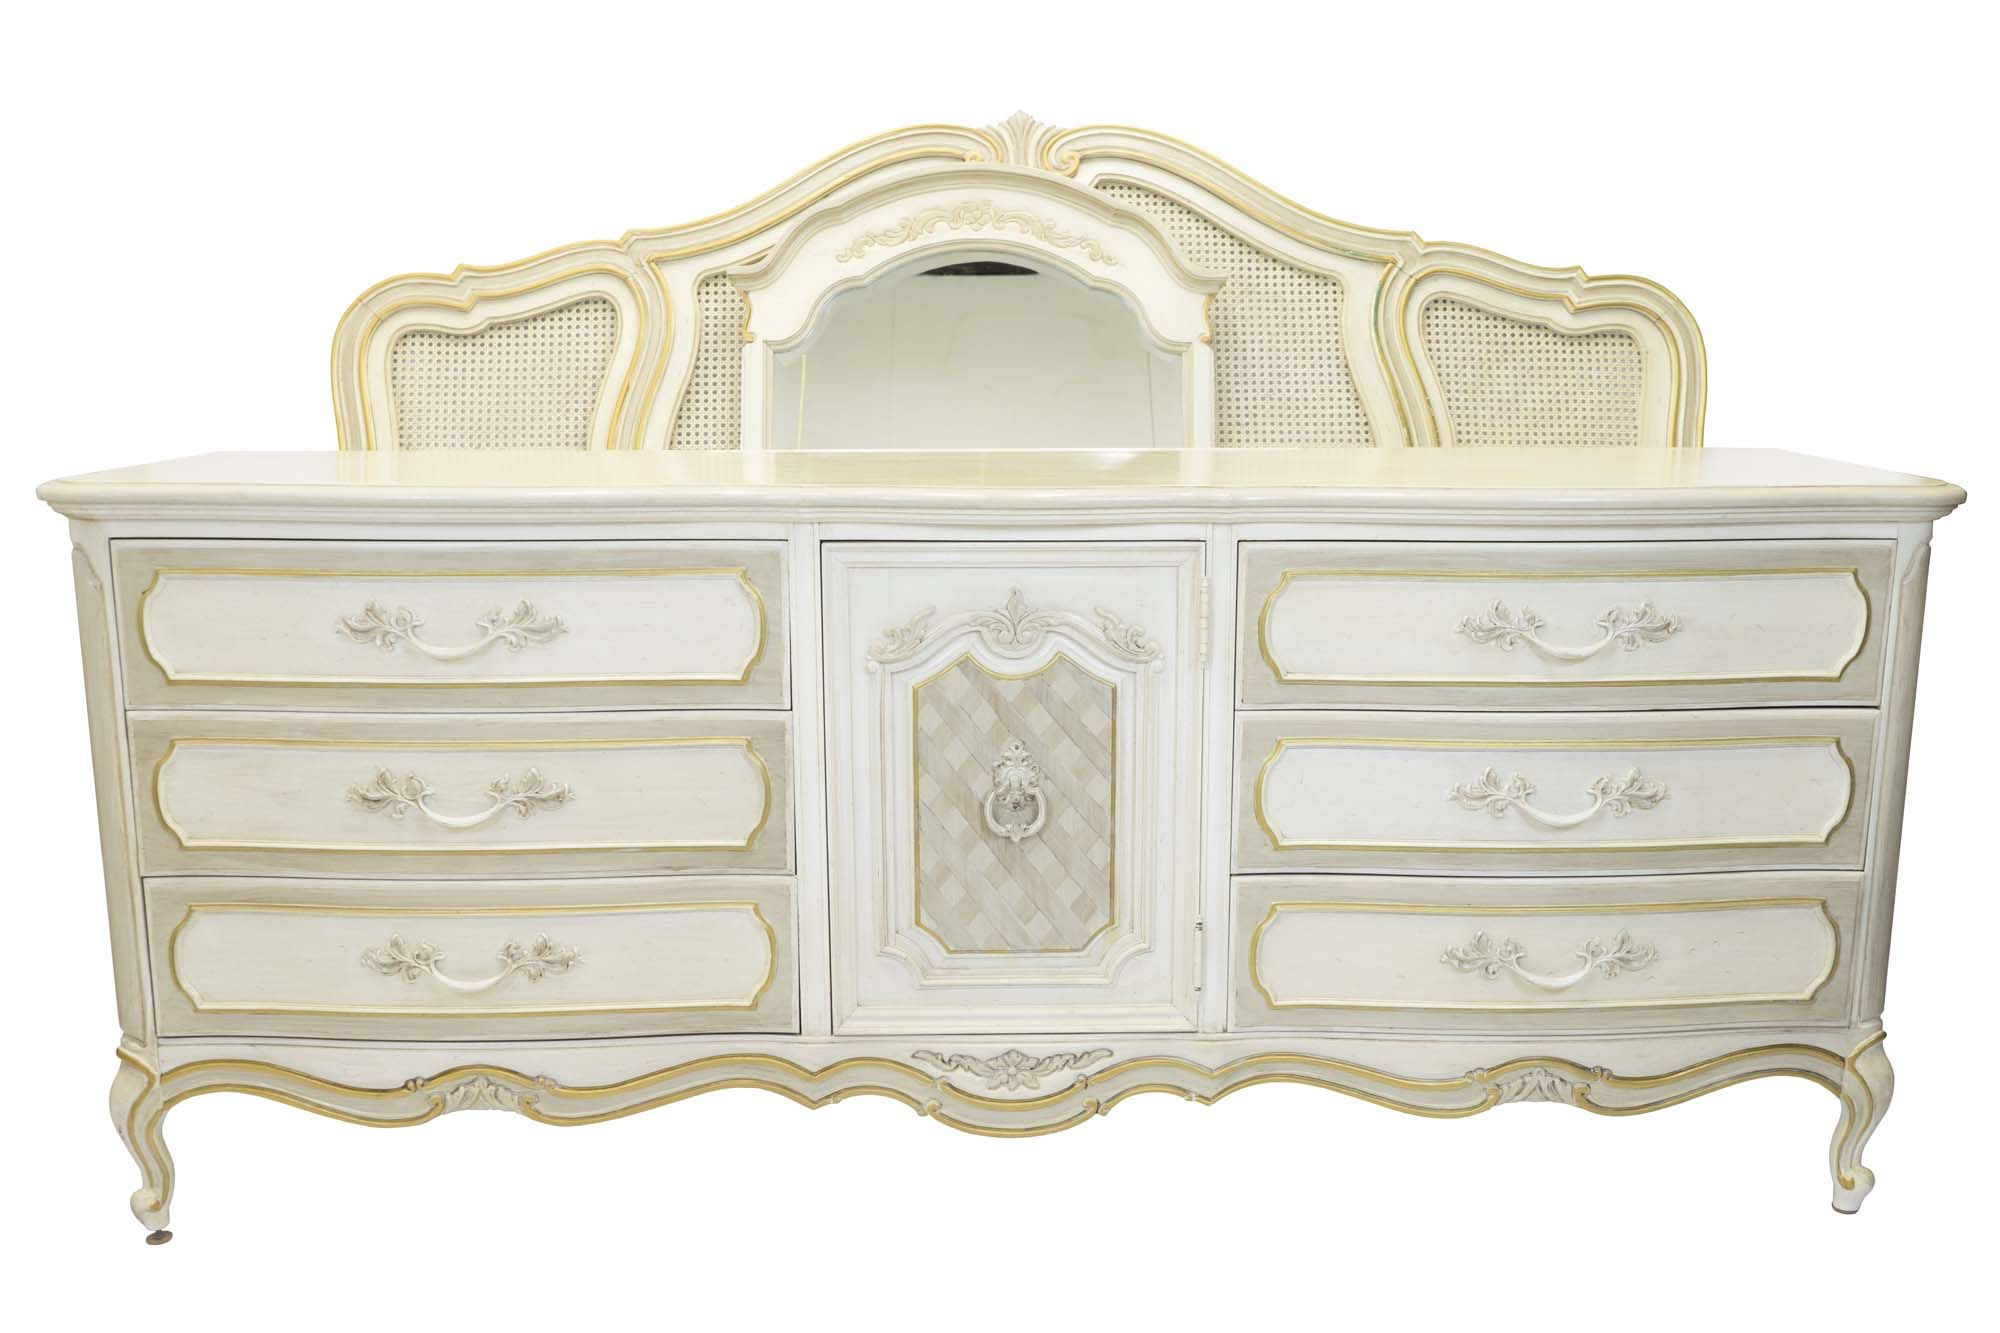 Thomasville French Provincial Bedroom Set Beauty And The Beast Style Bedroom  Set